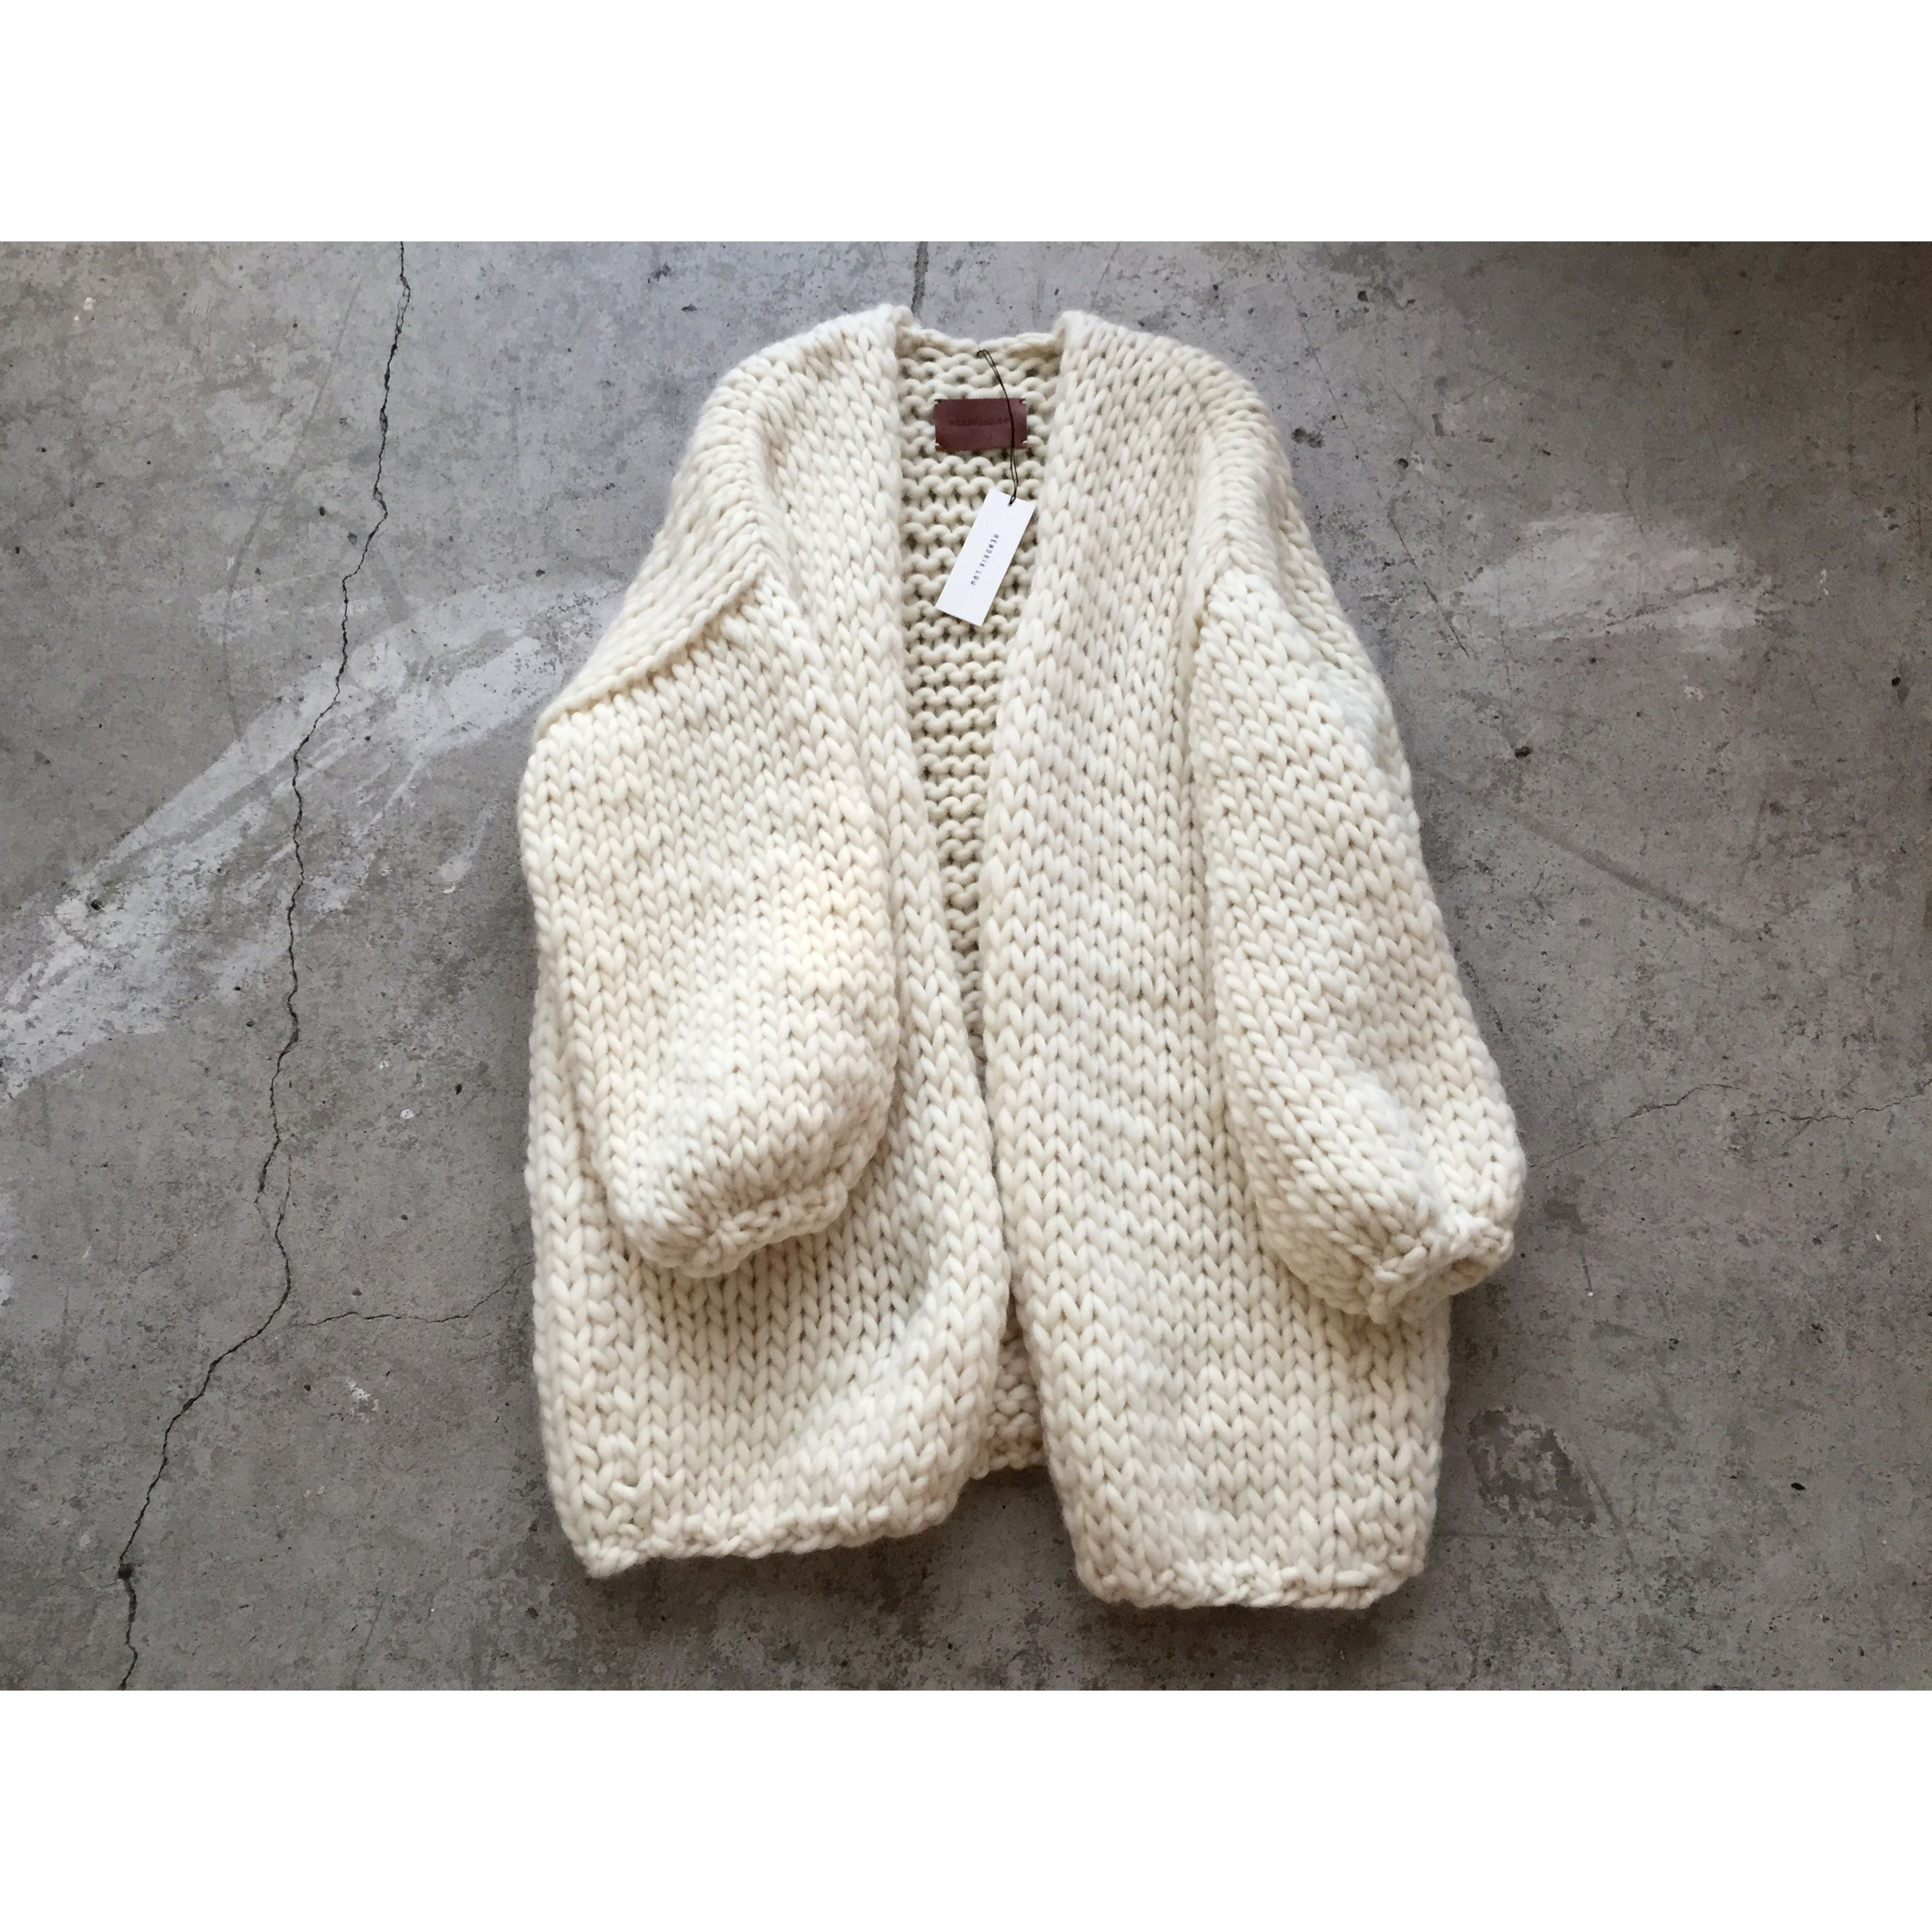 KNITWEAR - Cardigans Mishap Cheap With Mastercard Browse Aberdeen Fashion Style For Sale WLCuMJ